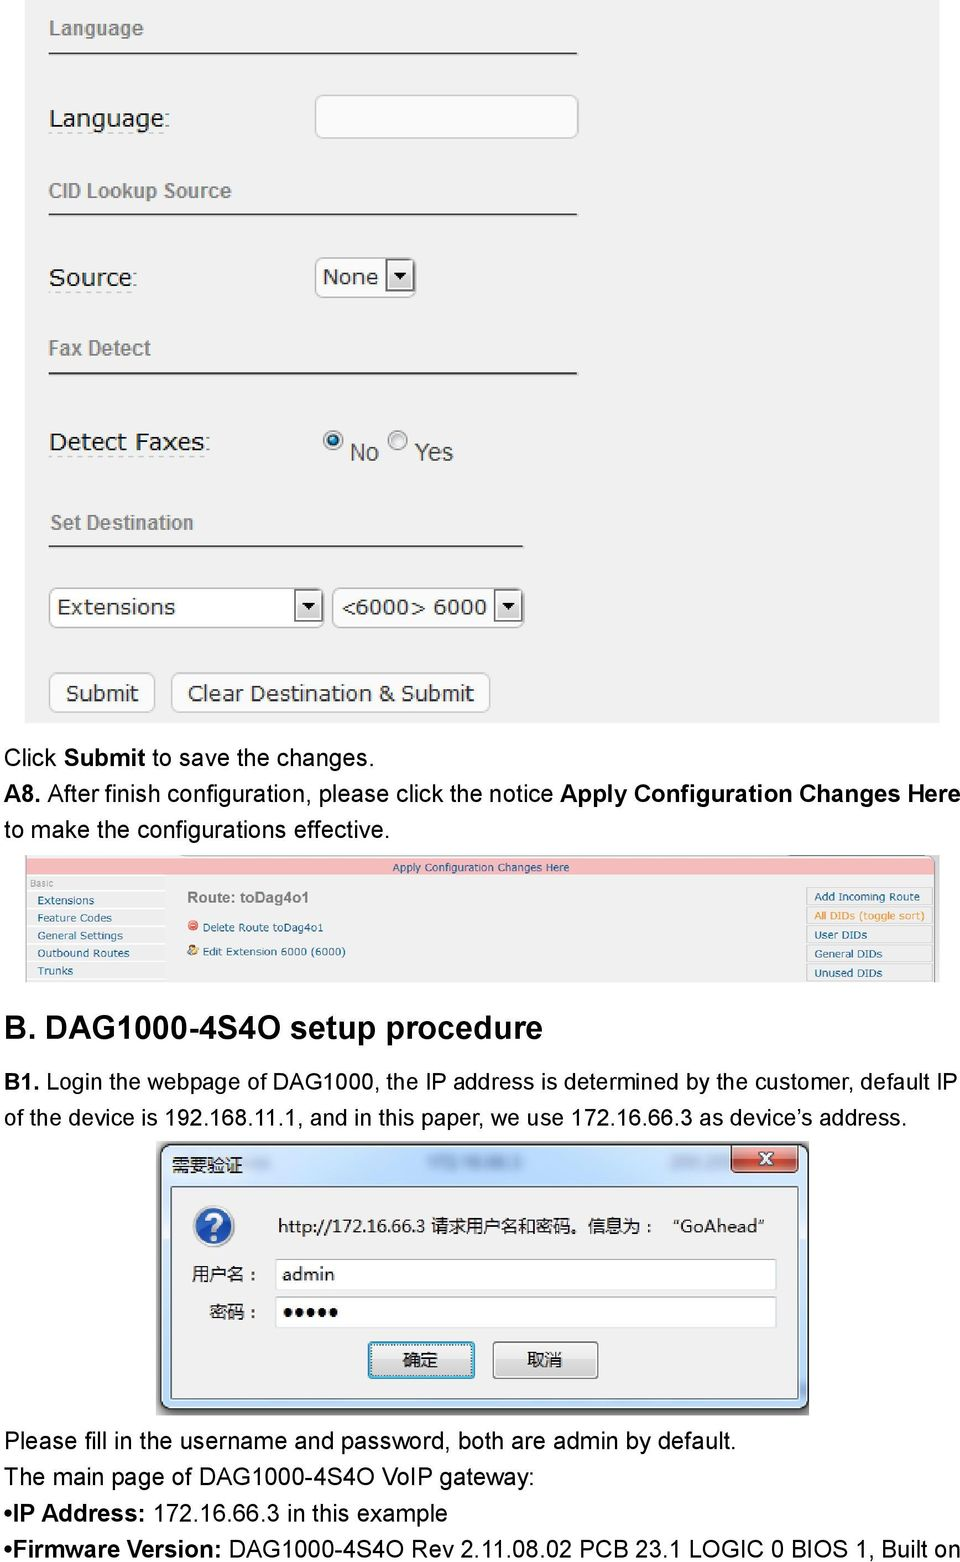 DAG1000-4S4O setup procedure B1. Login the webpage of DAG1000, the IP address is determined by the customer, default IP of the device is 192.168.11.